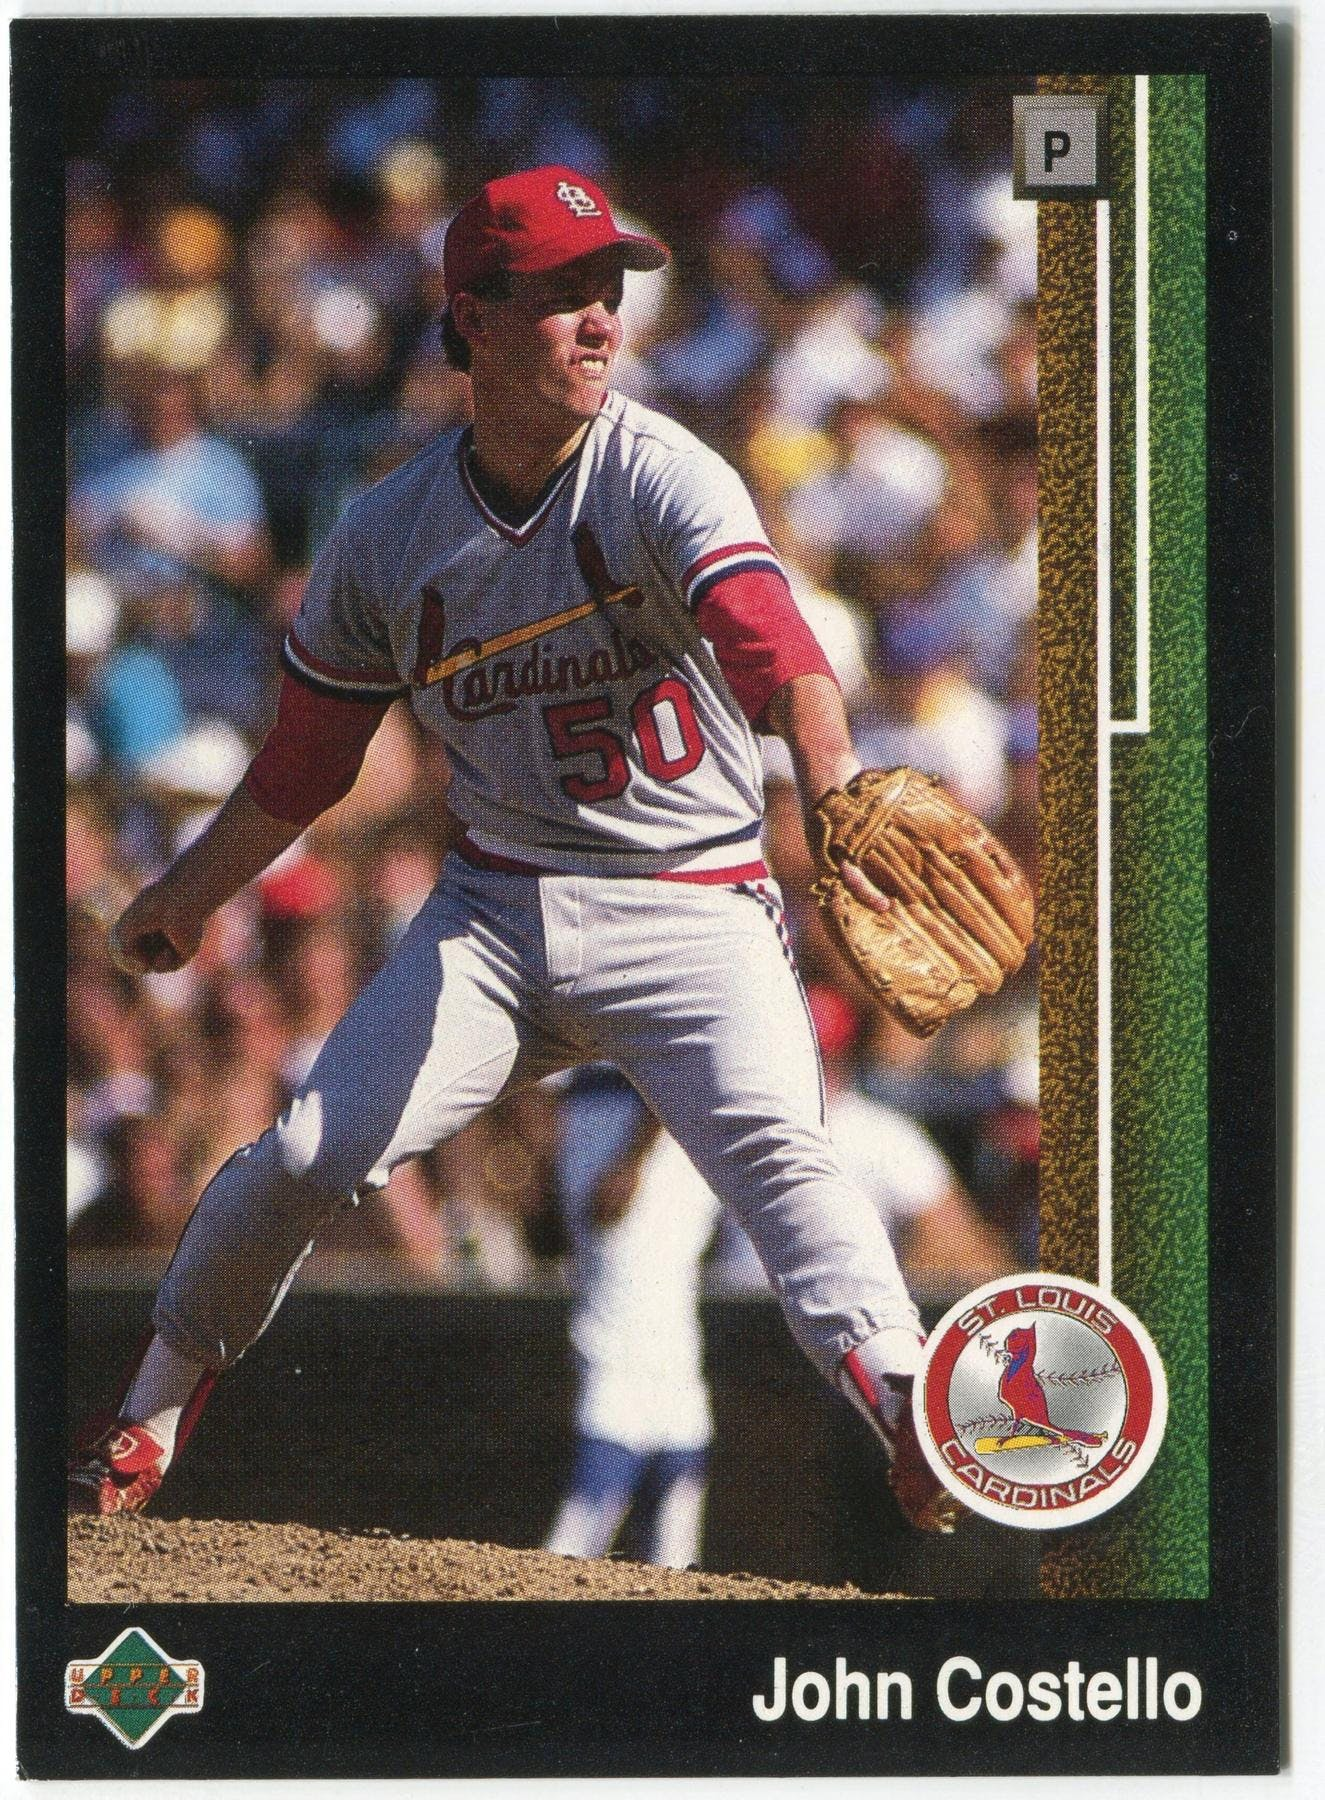 1989 Upper Deck John Costello St Louis Cardinals 625 Black Border Proof